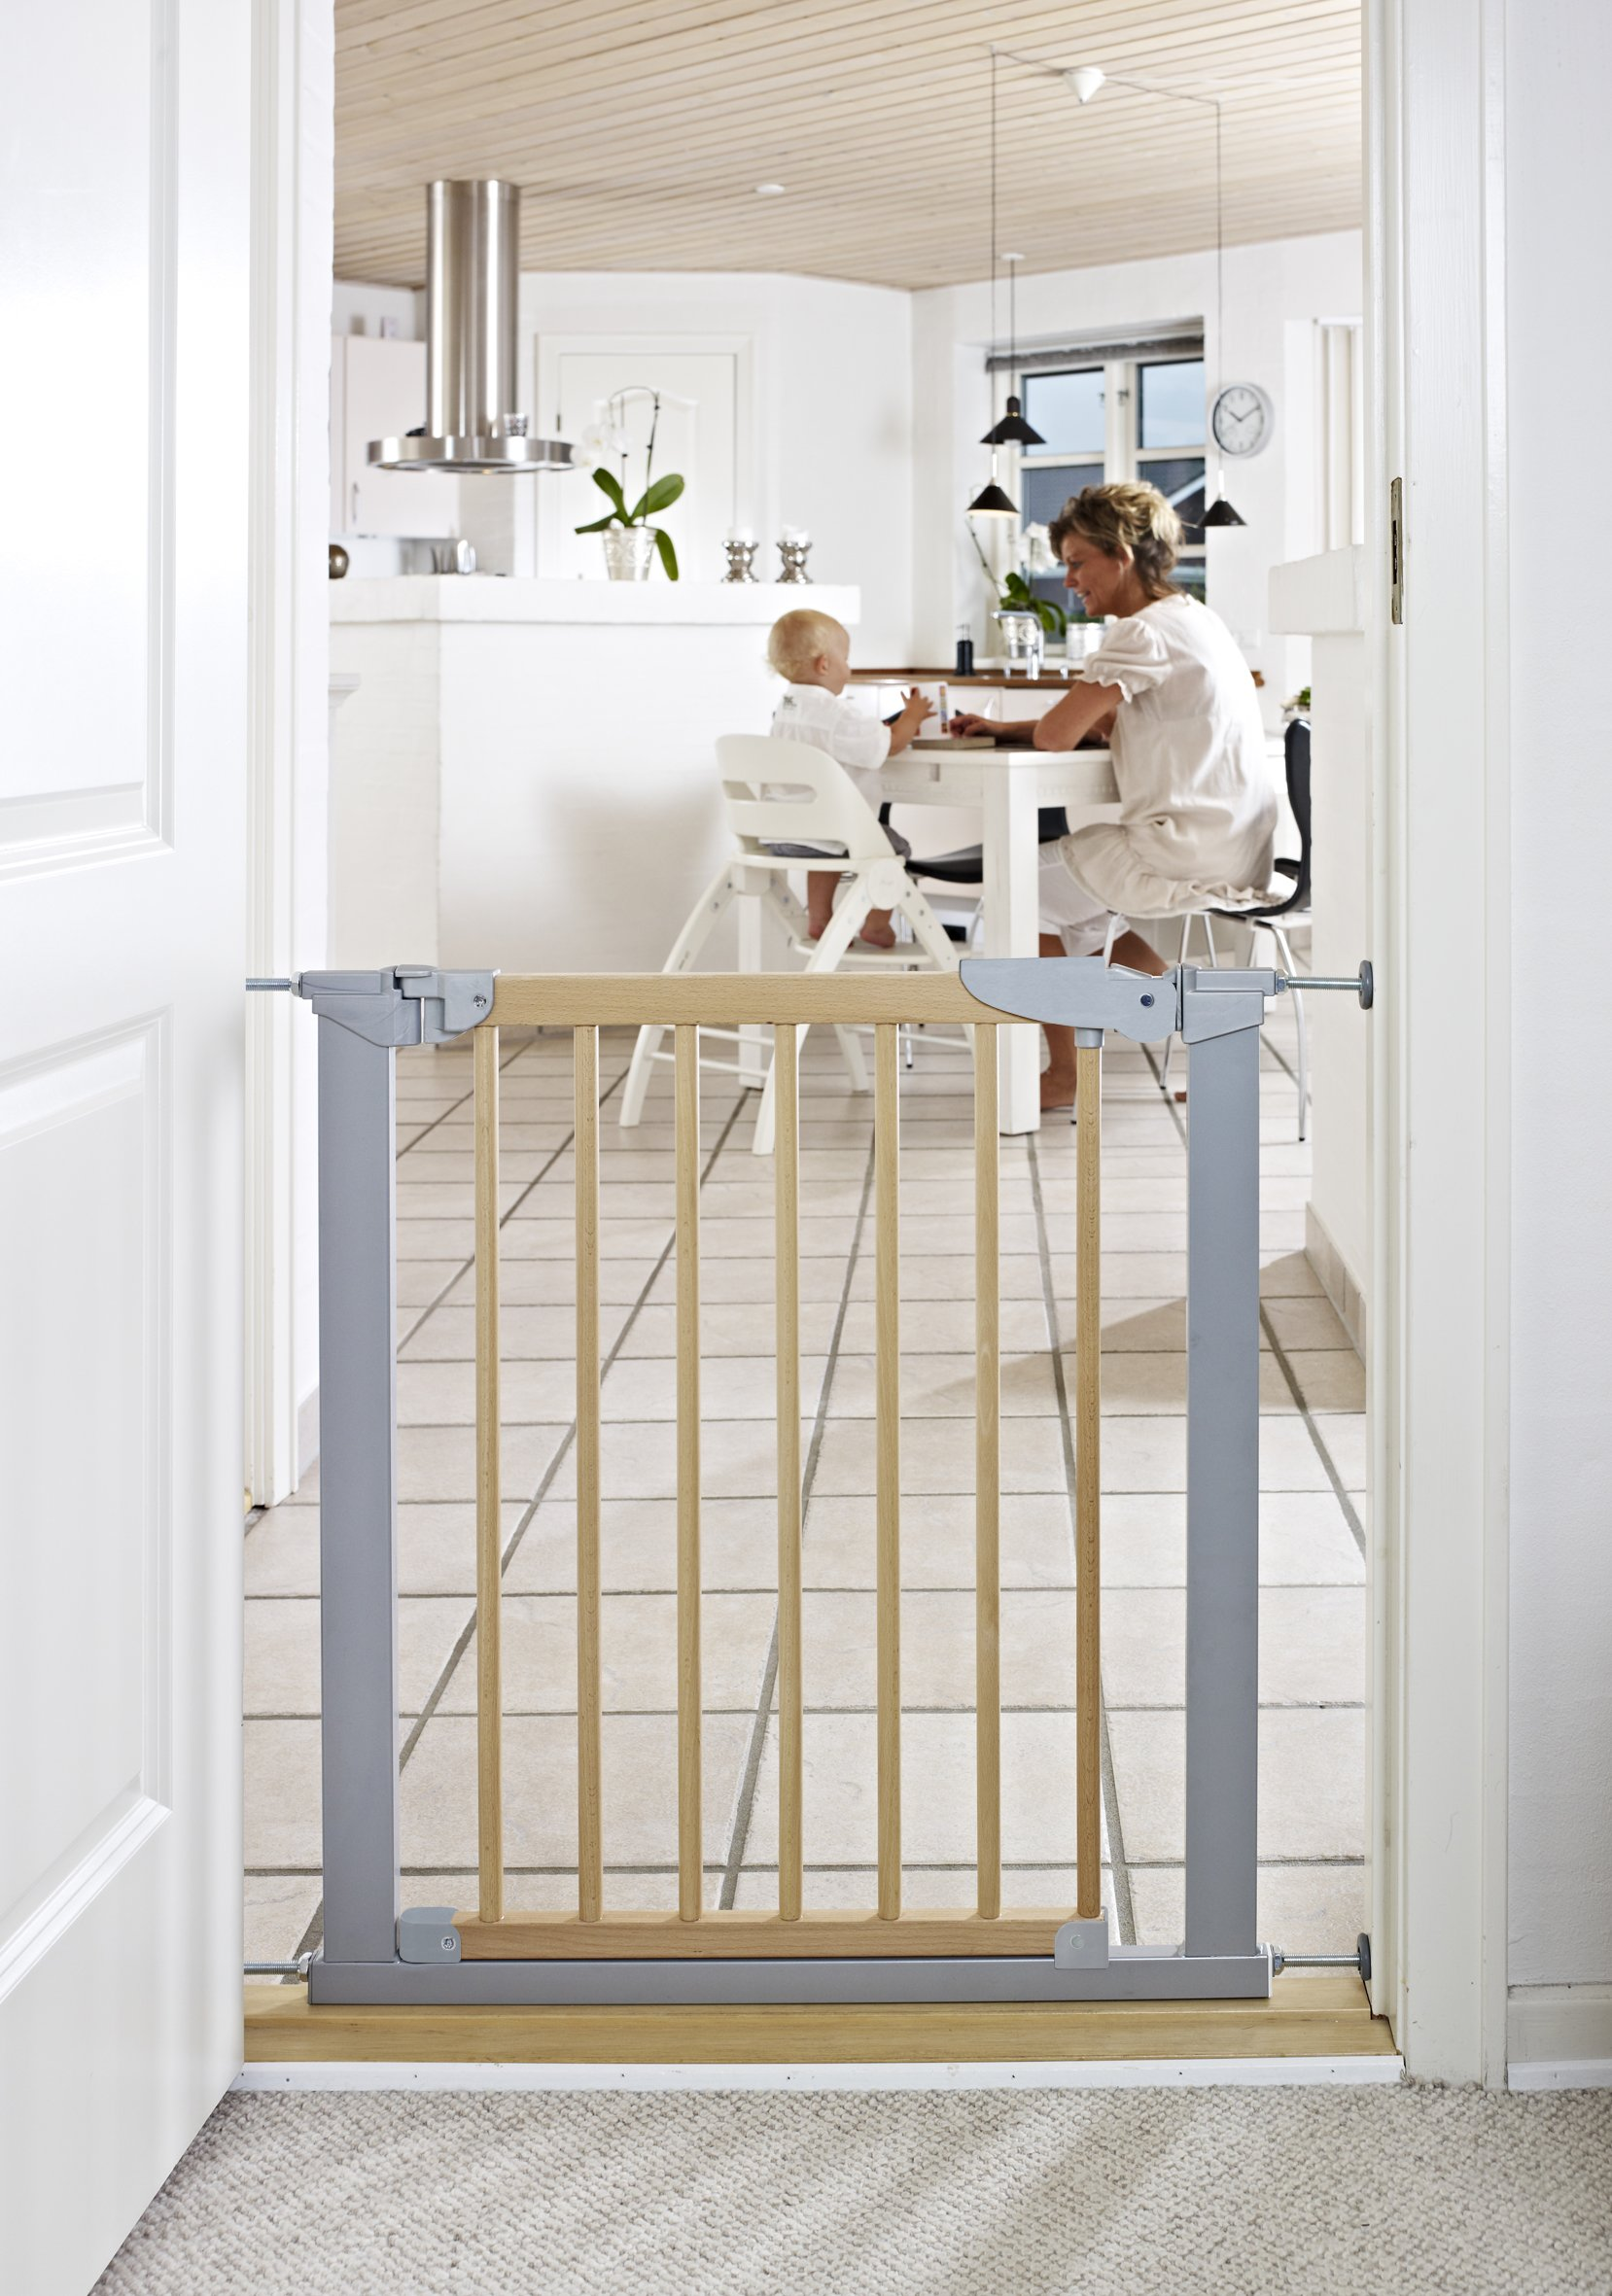 BabyDan Avantgarde True Pressure Fit Safety Gate (Beech/Silver)  Fits openings from 71.3 to 77.6 cm wide; 73 cm in height Can be extended up to 117.1 cm with additional extensions (sold separately) Pressure technology means the gate can be fitted without wall cups 2